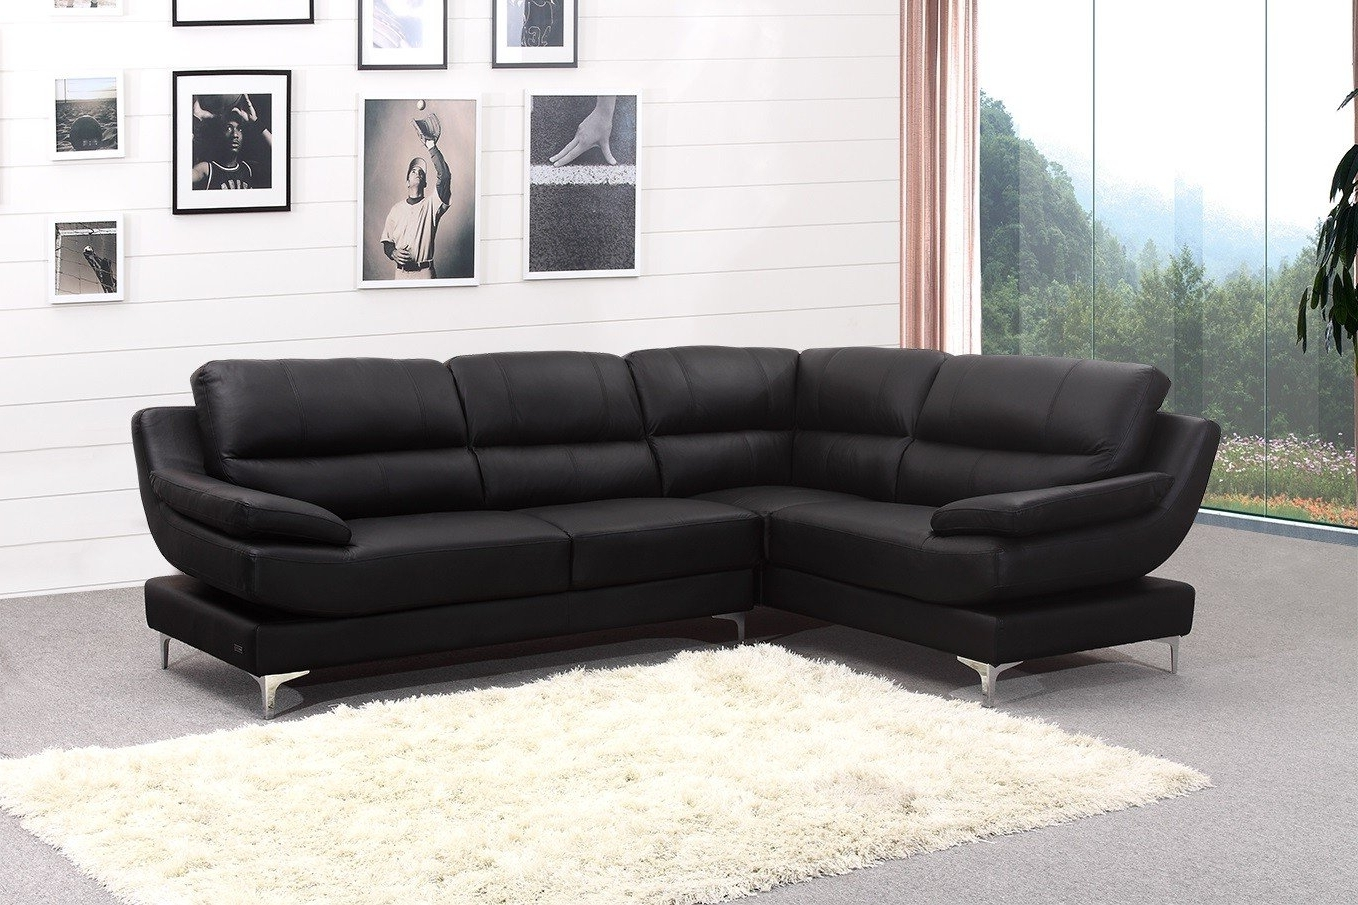 New Ideas Leather Corner Sofas With Corner Sofa Leather Brown With 2017 Leather Corner Sofas (View 9 of 15)